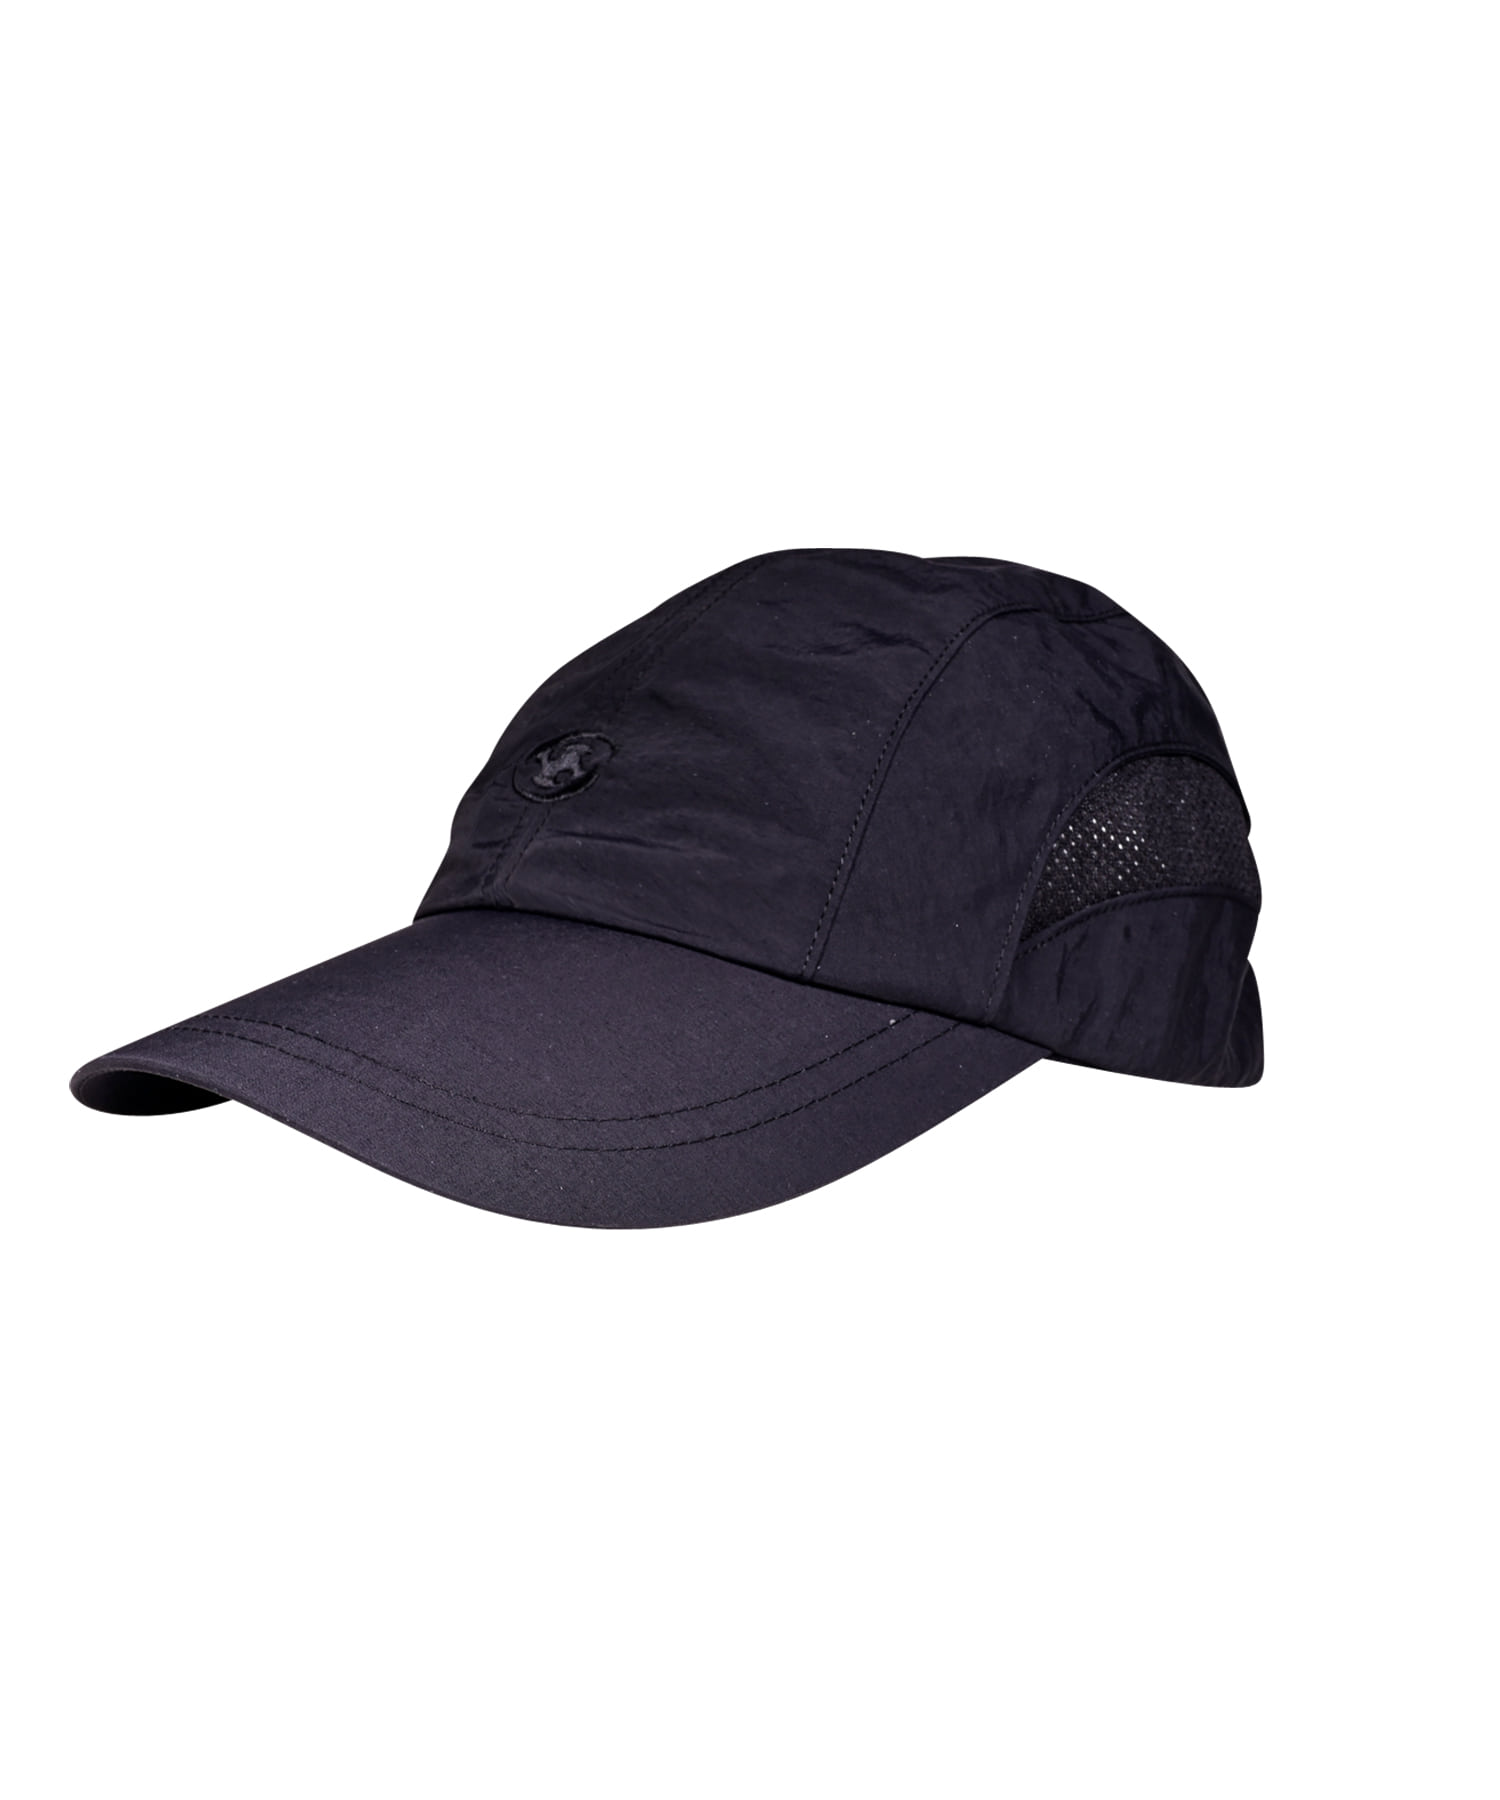 WING CAP BLACK